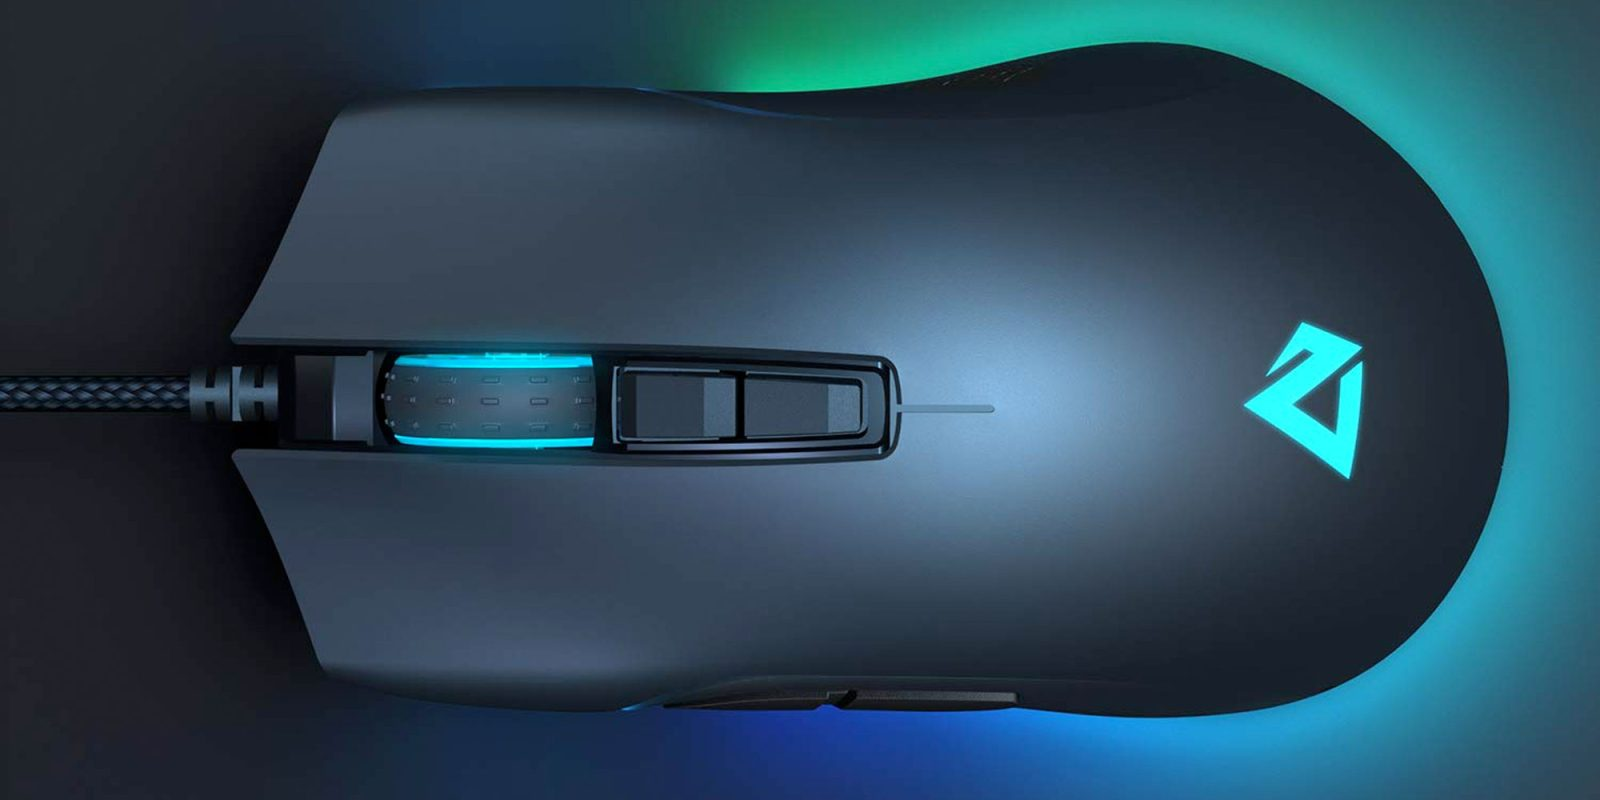 Aukey's RGB gaming mouse is a must for colorful battlestations at $20, more